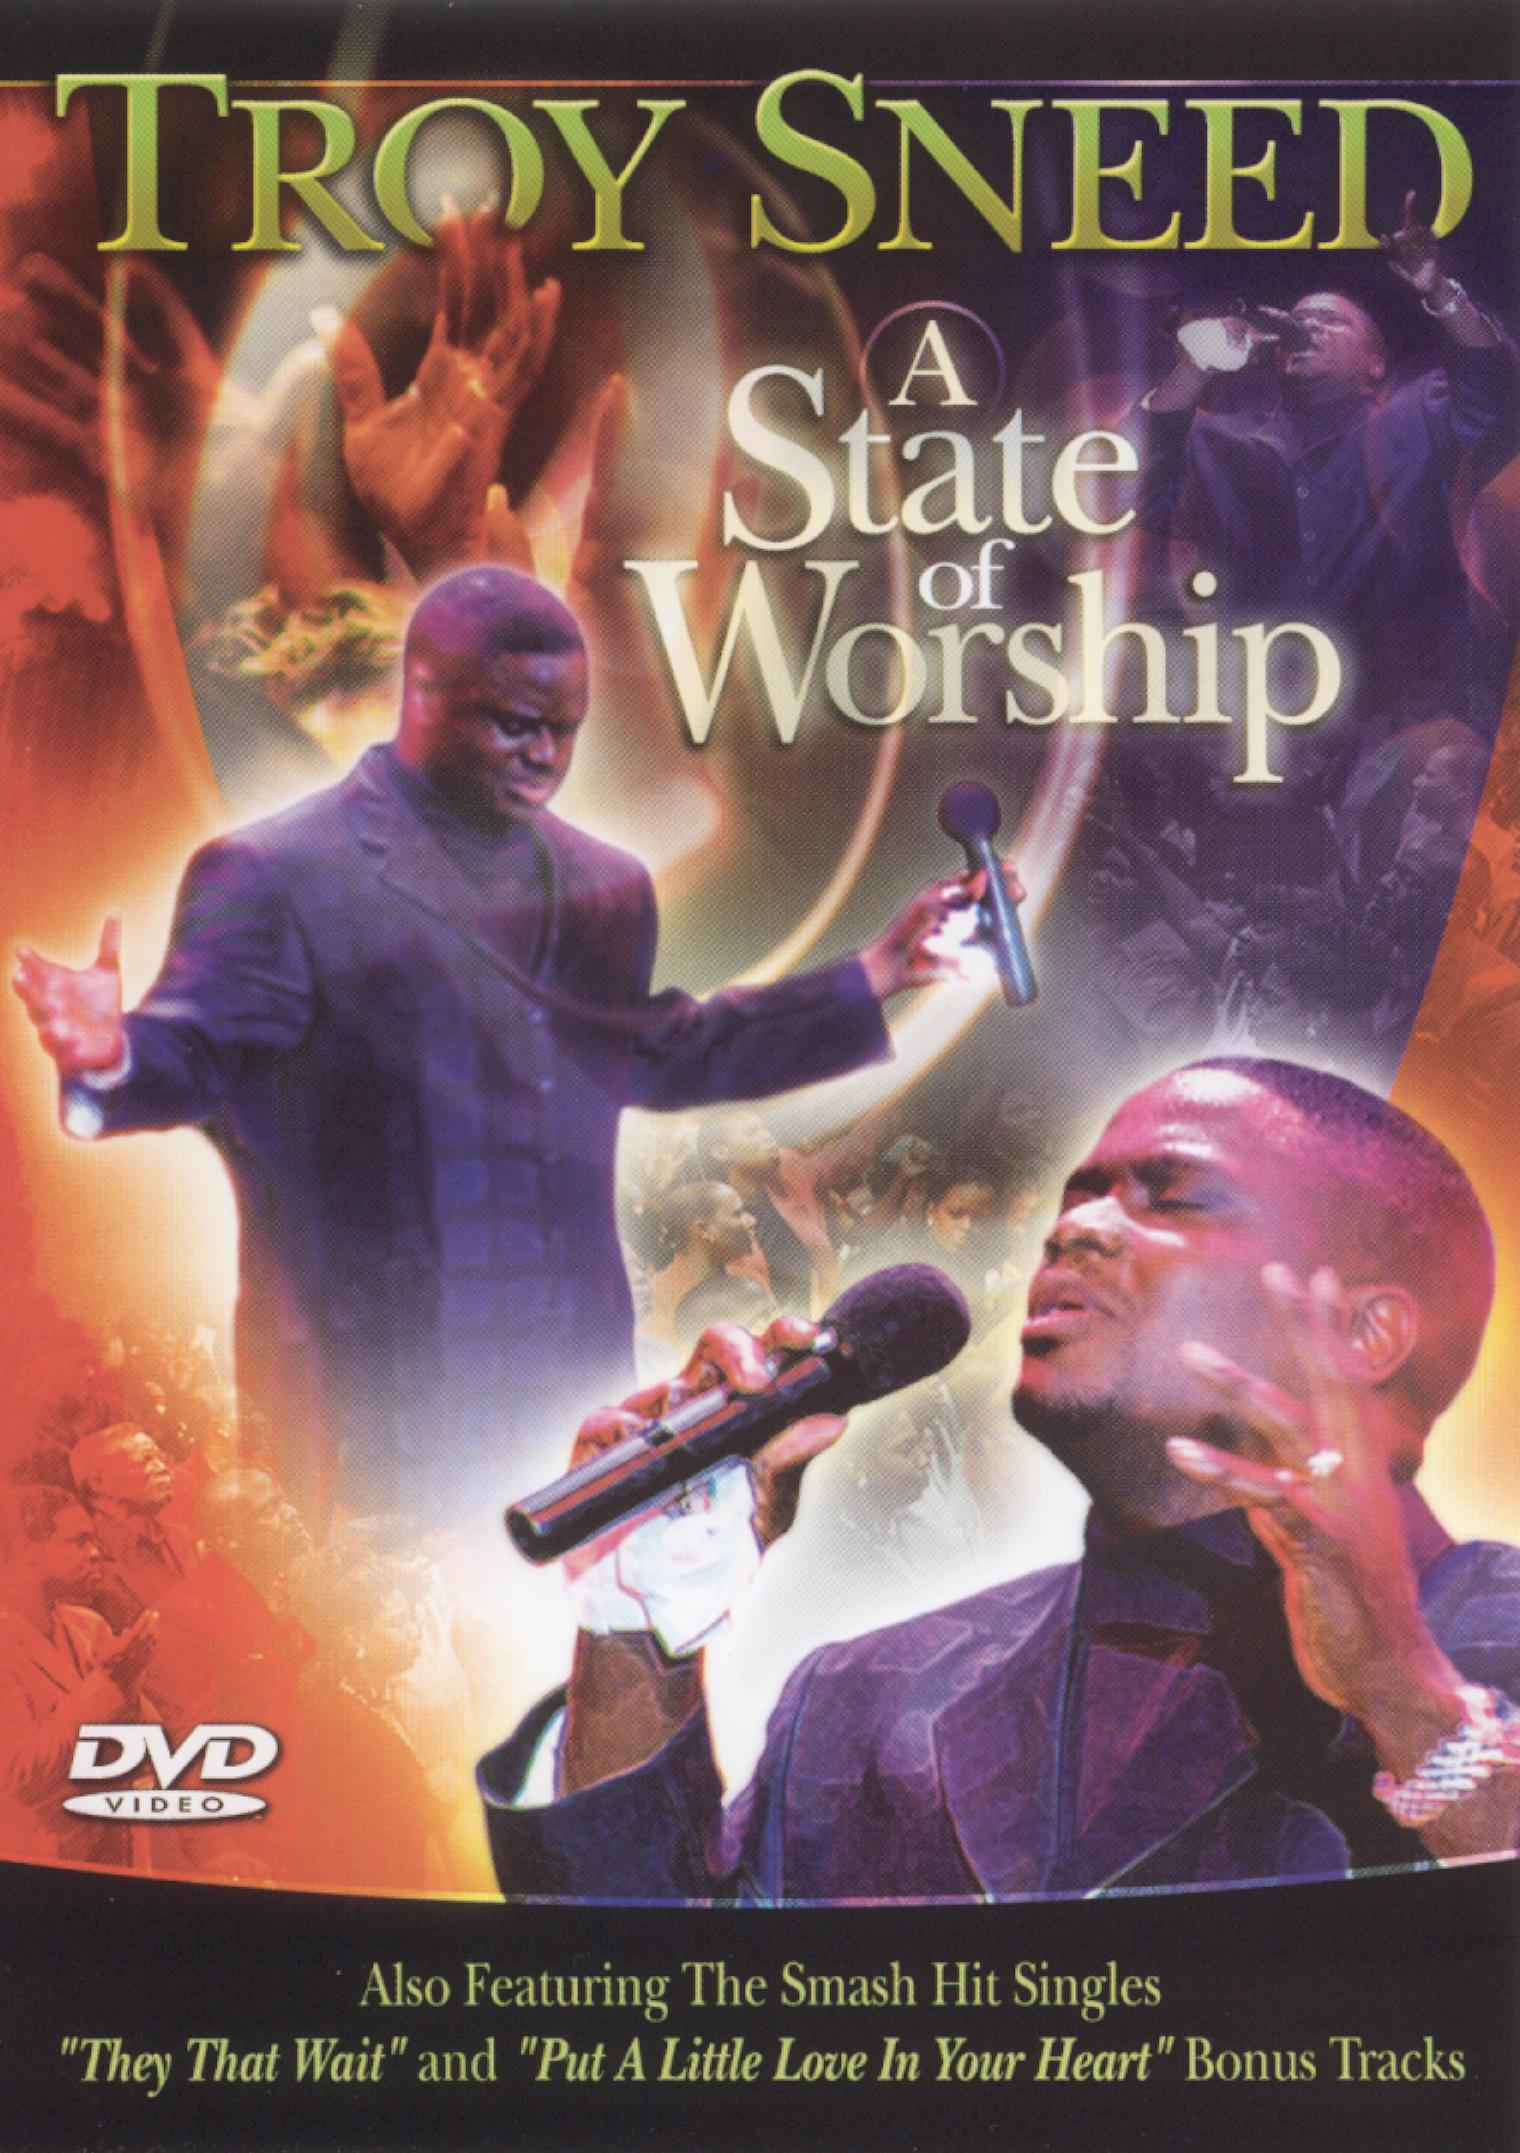 Troy Sneed: A State of Worship